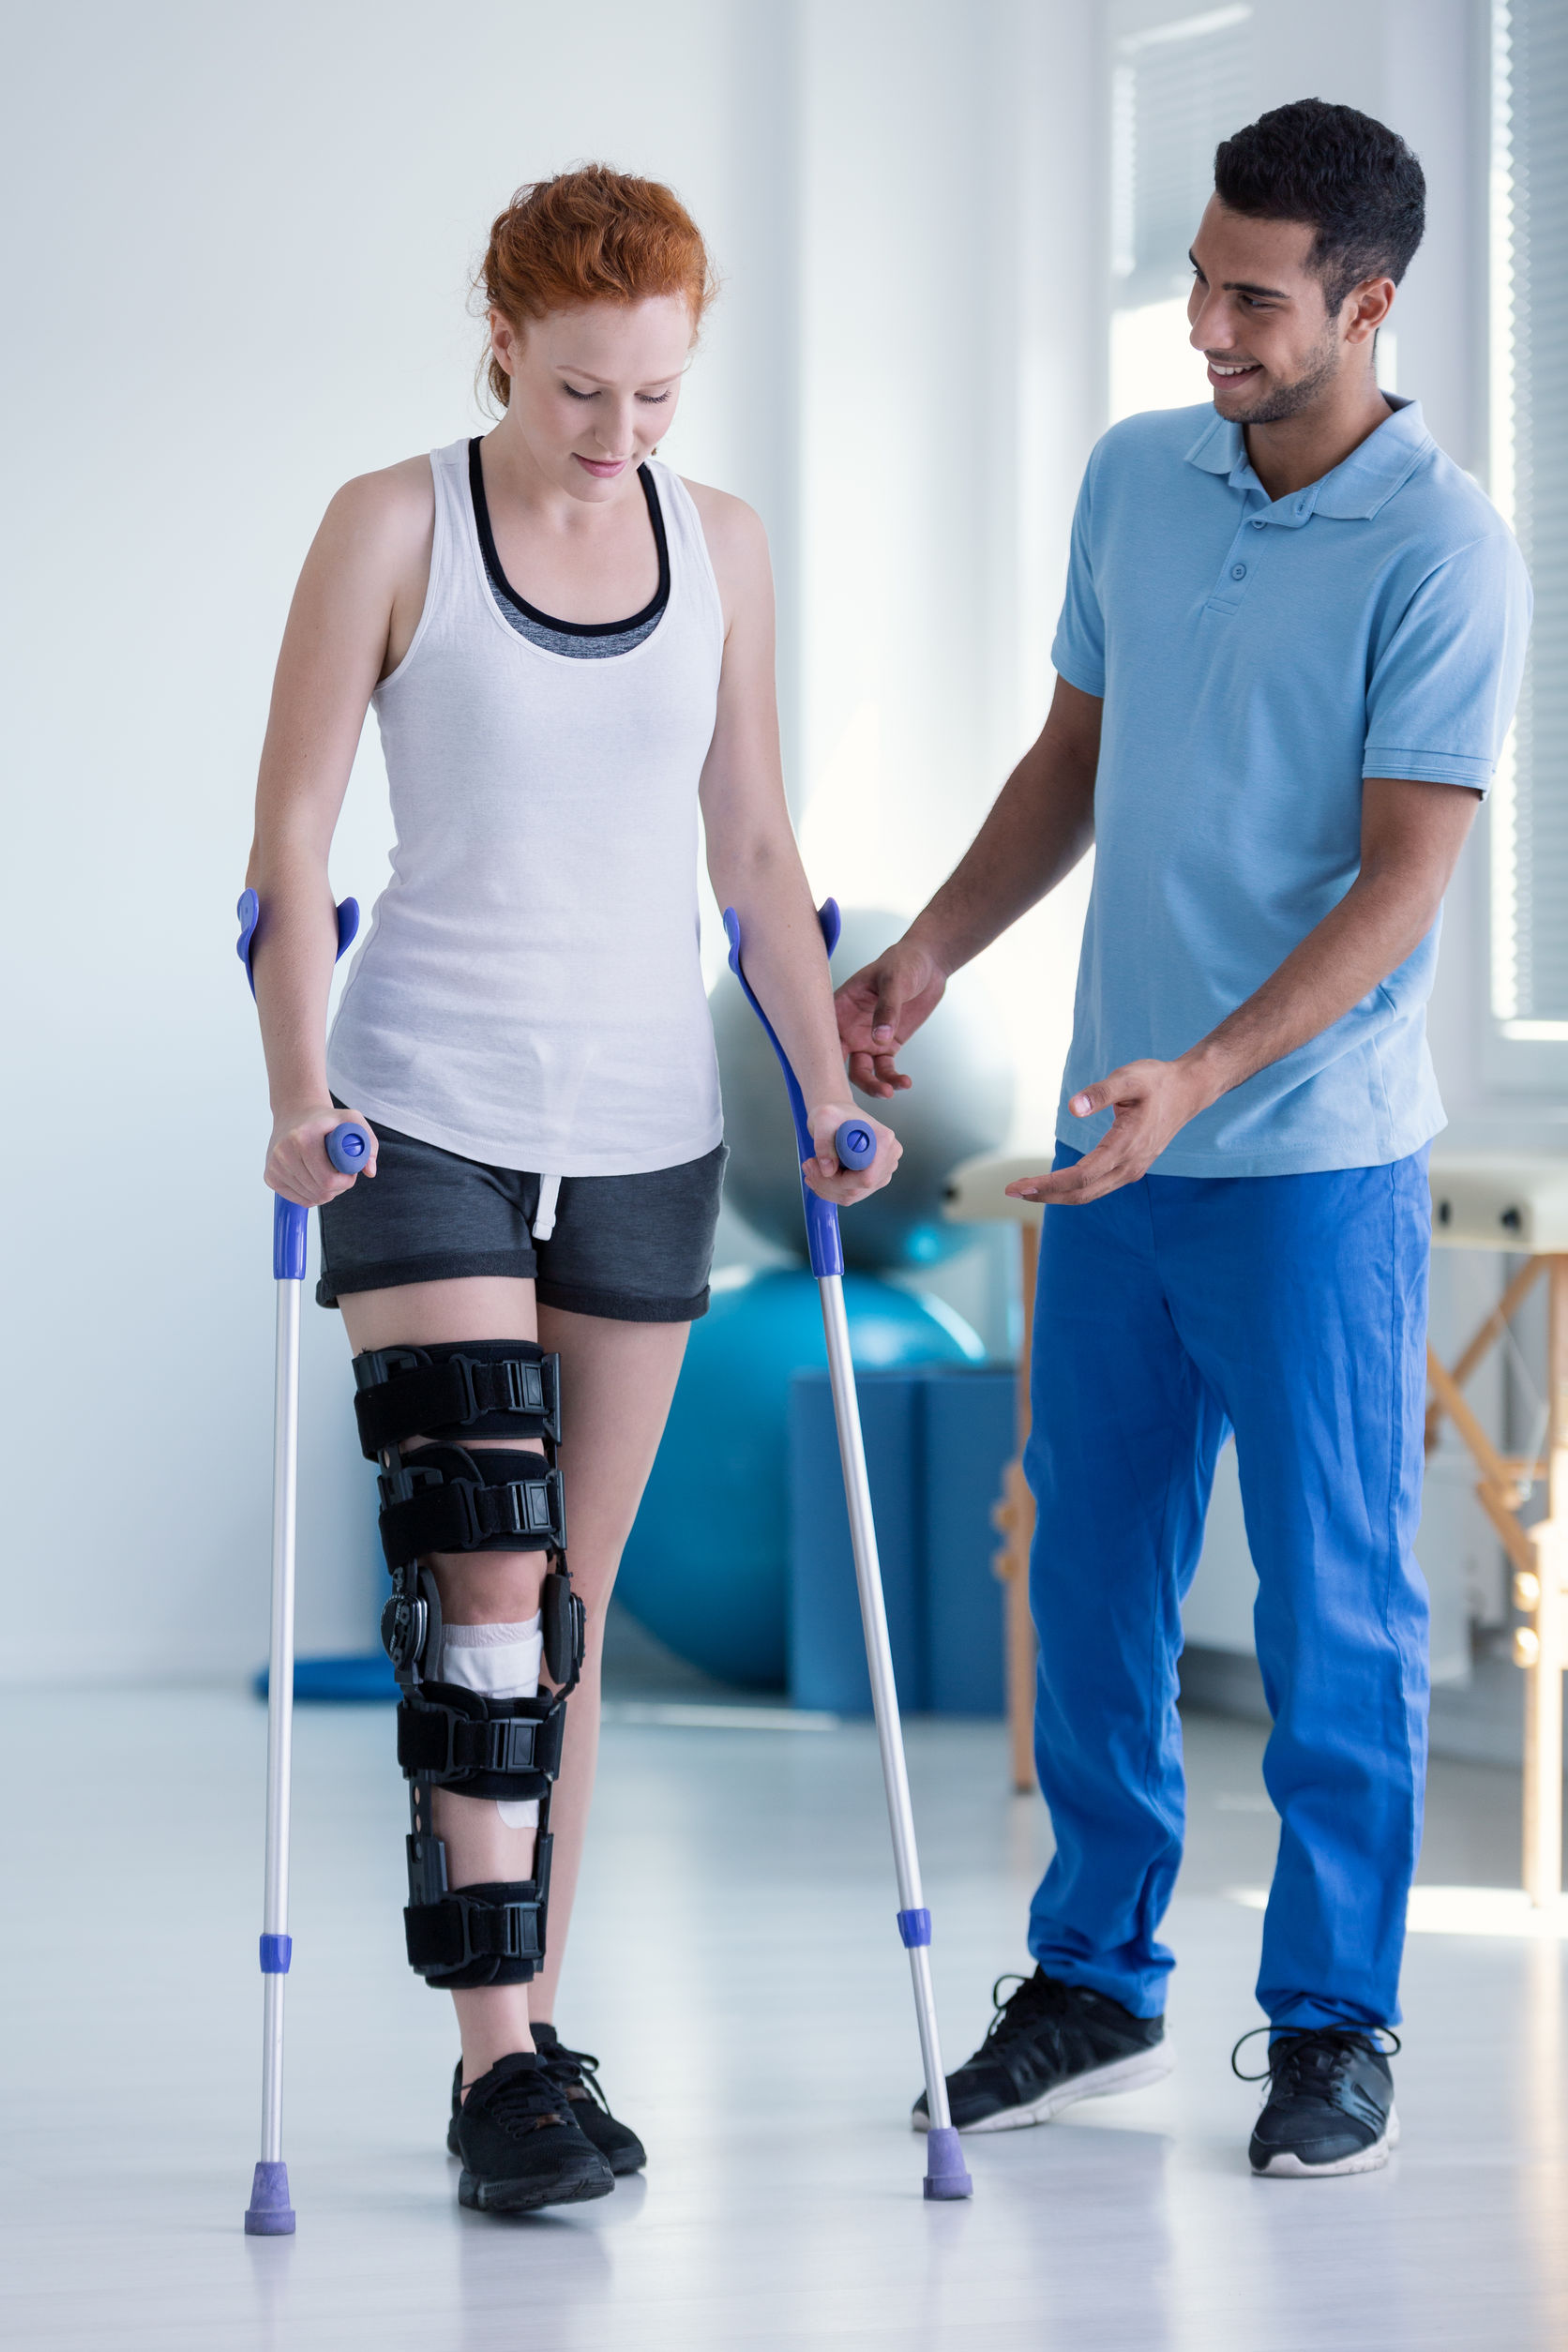 workers compensation physical therapy